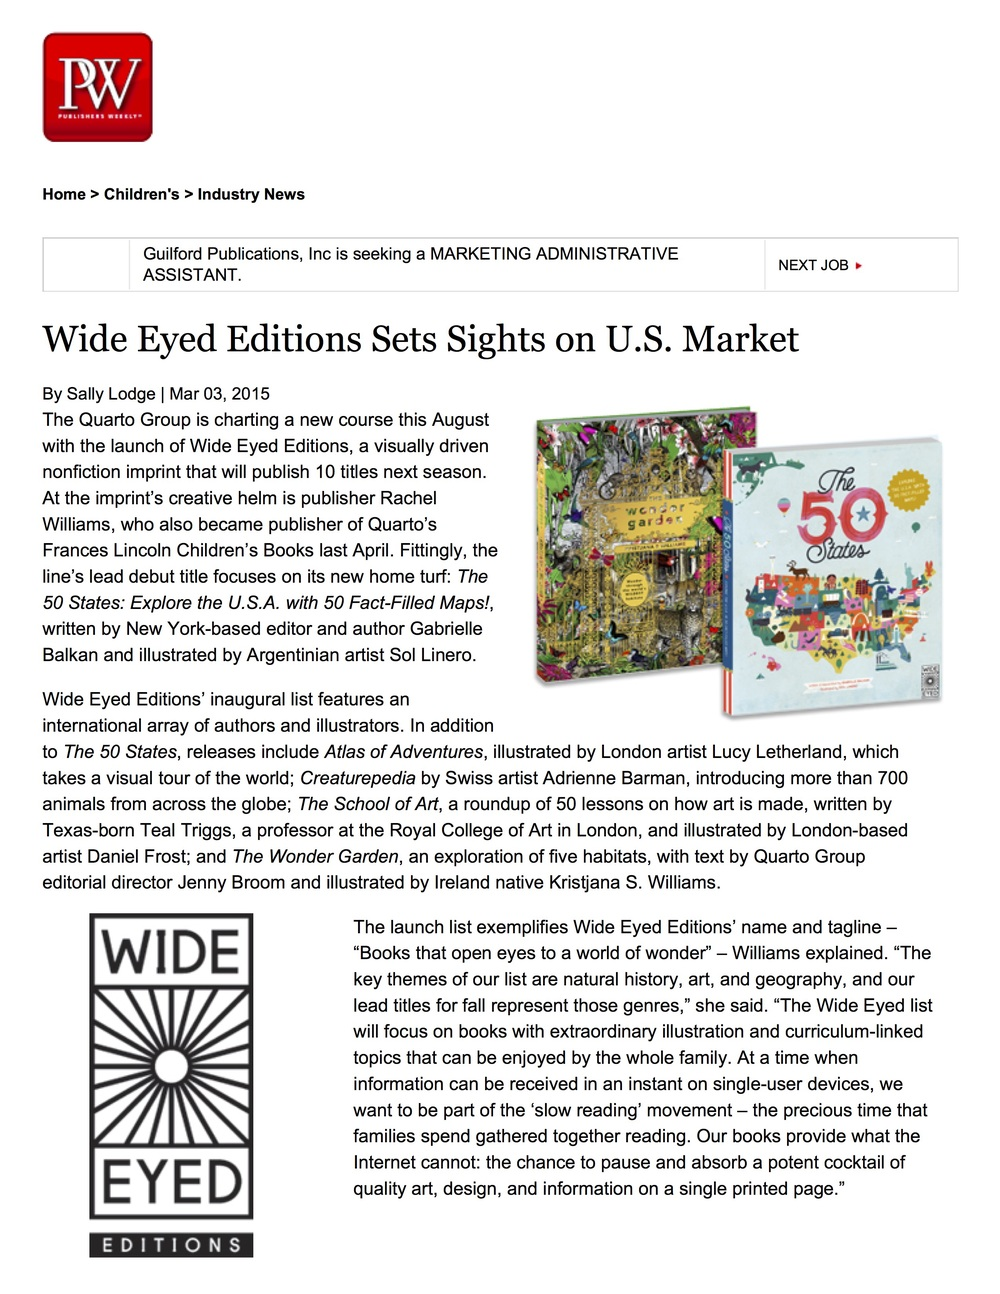 PW_Wide Eyed Editions Sets Sights on U.jpg